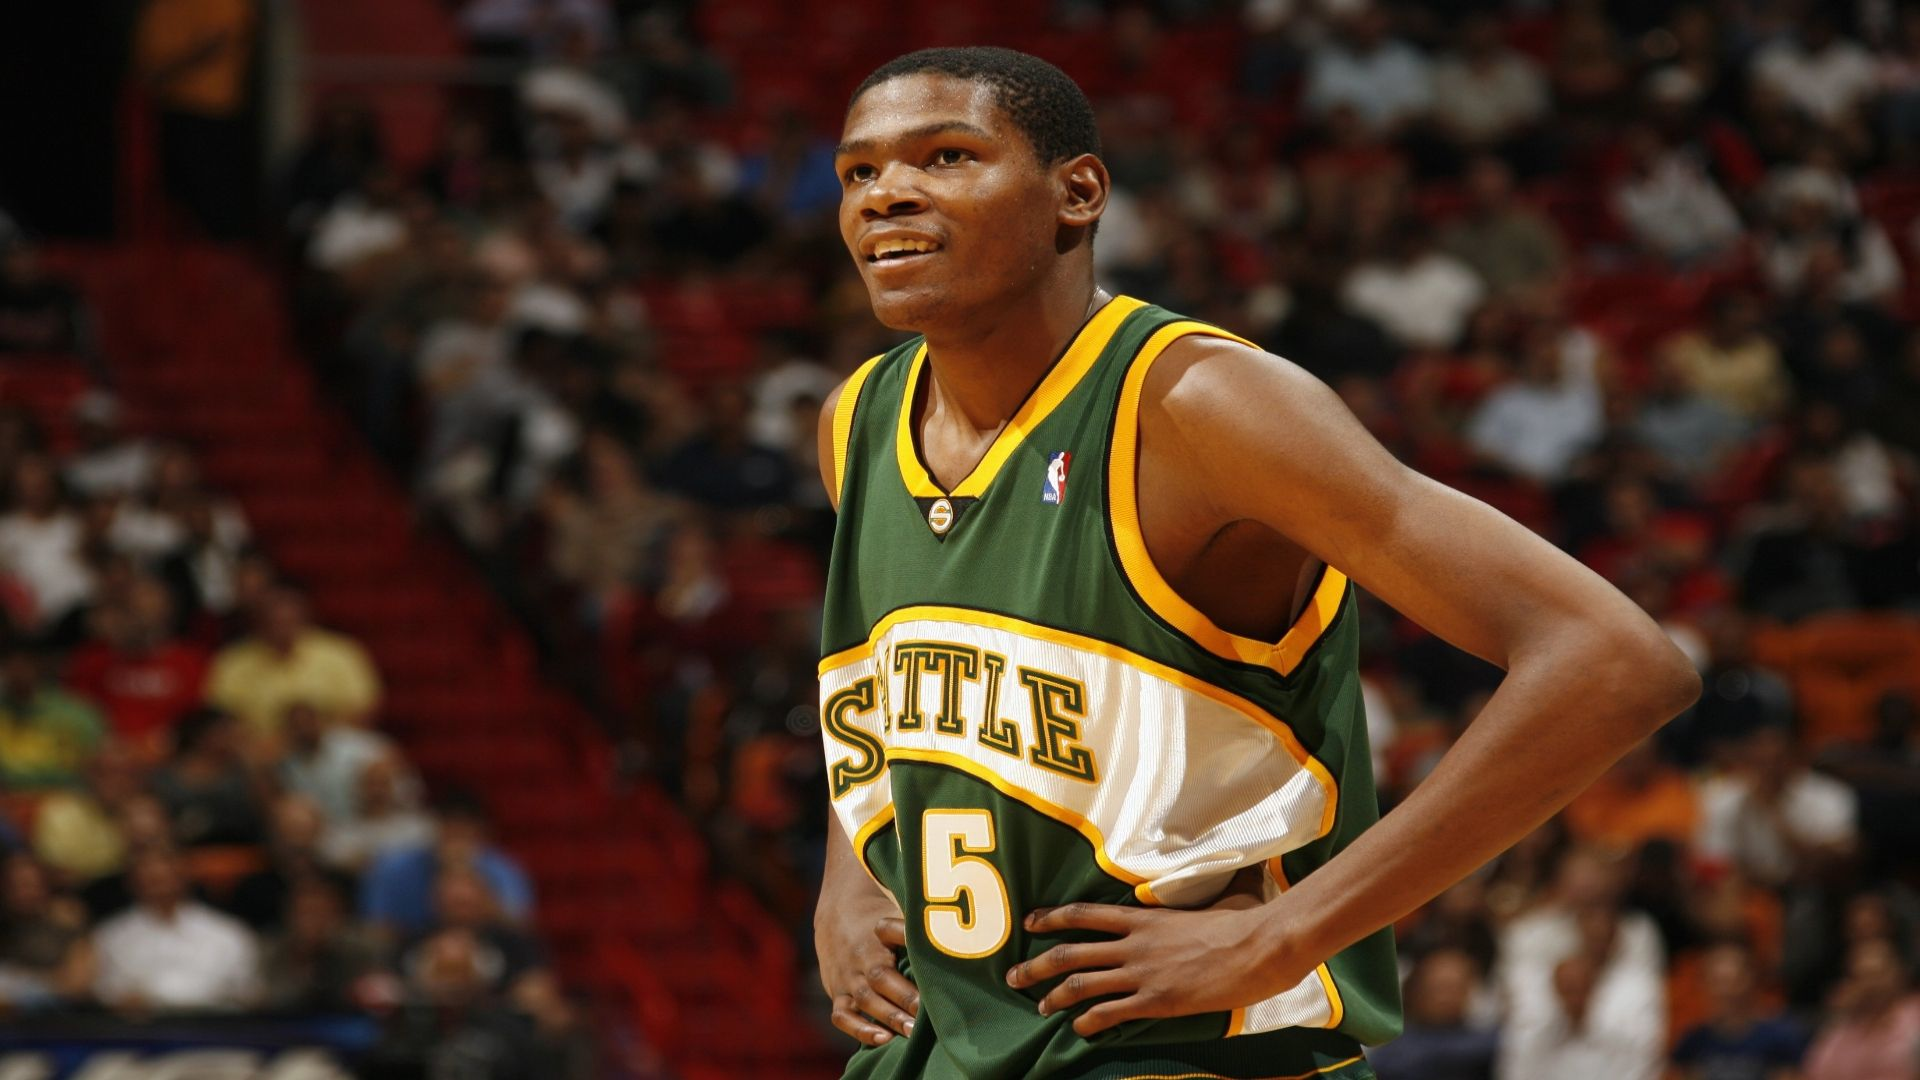 Durant shined as a 19-year-old SuperSonic